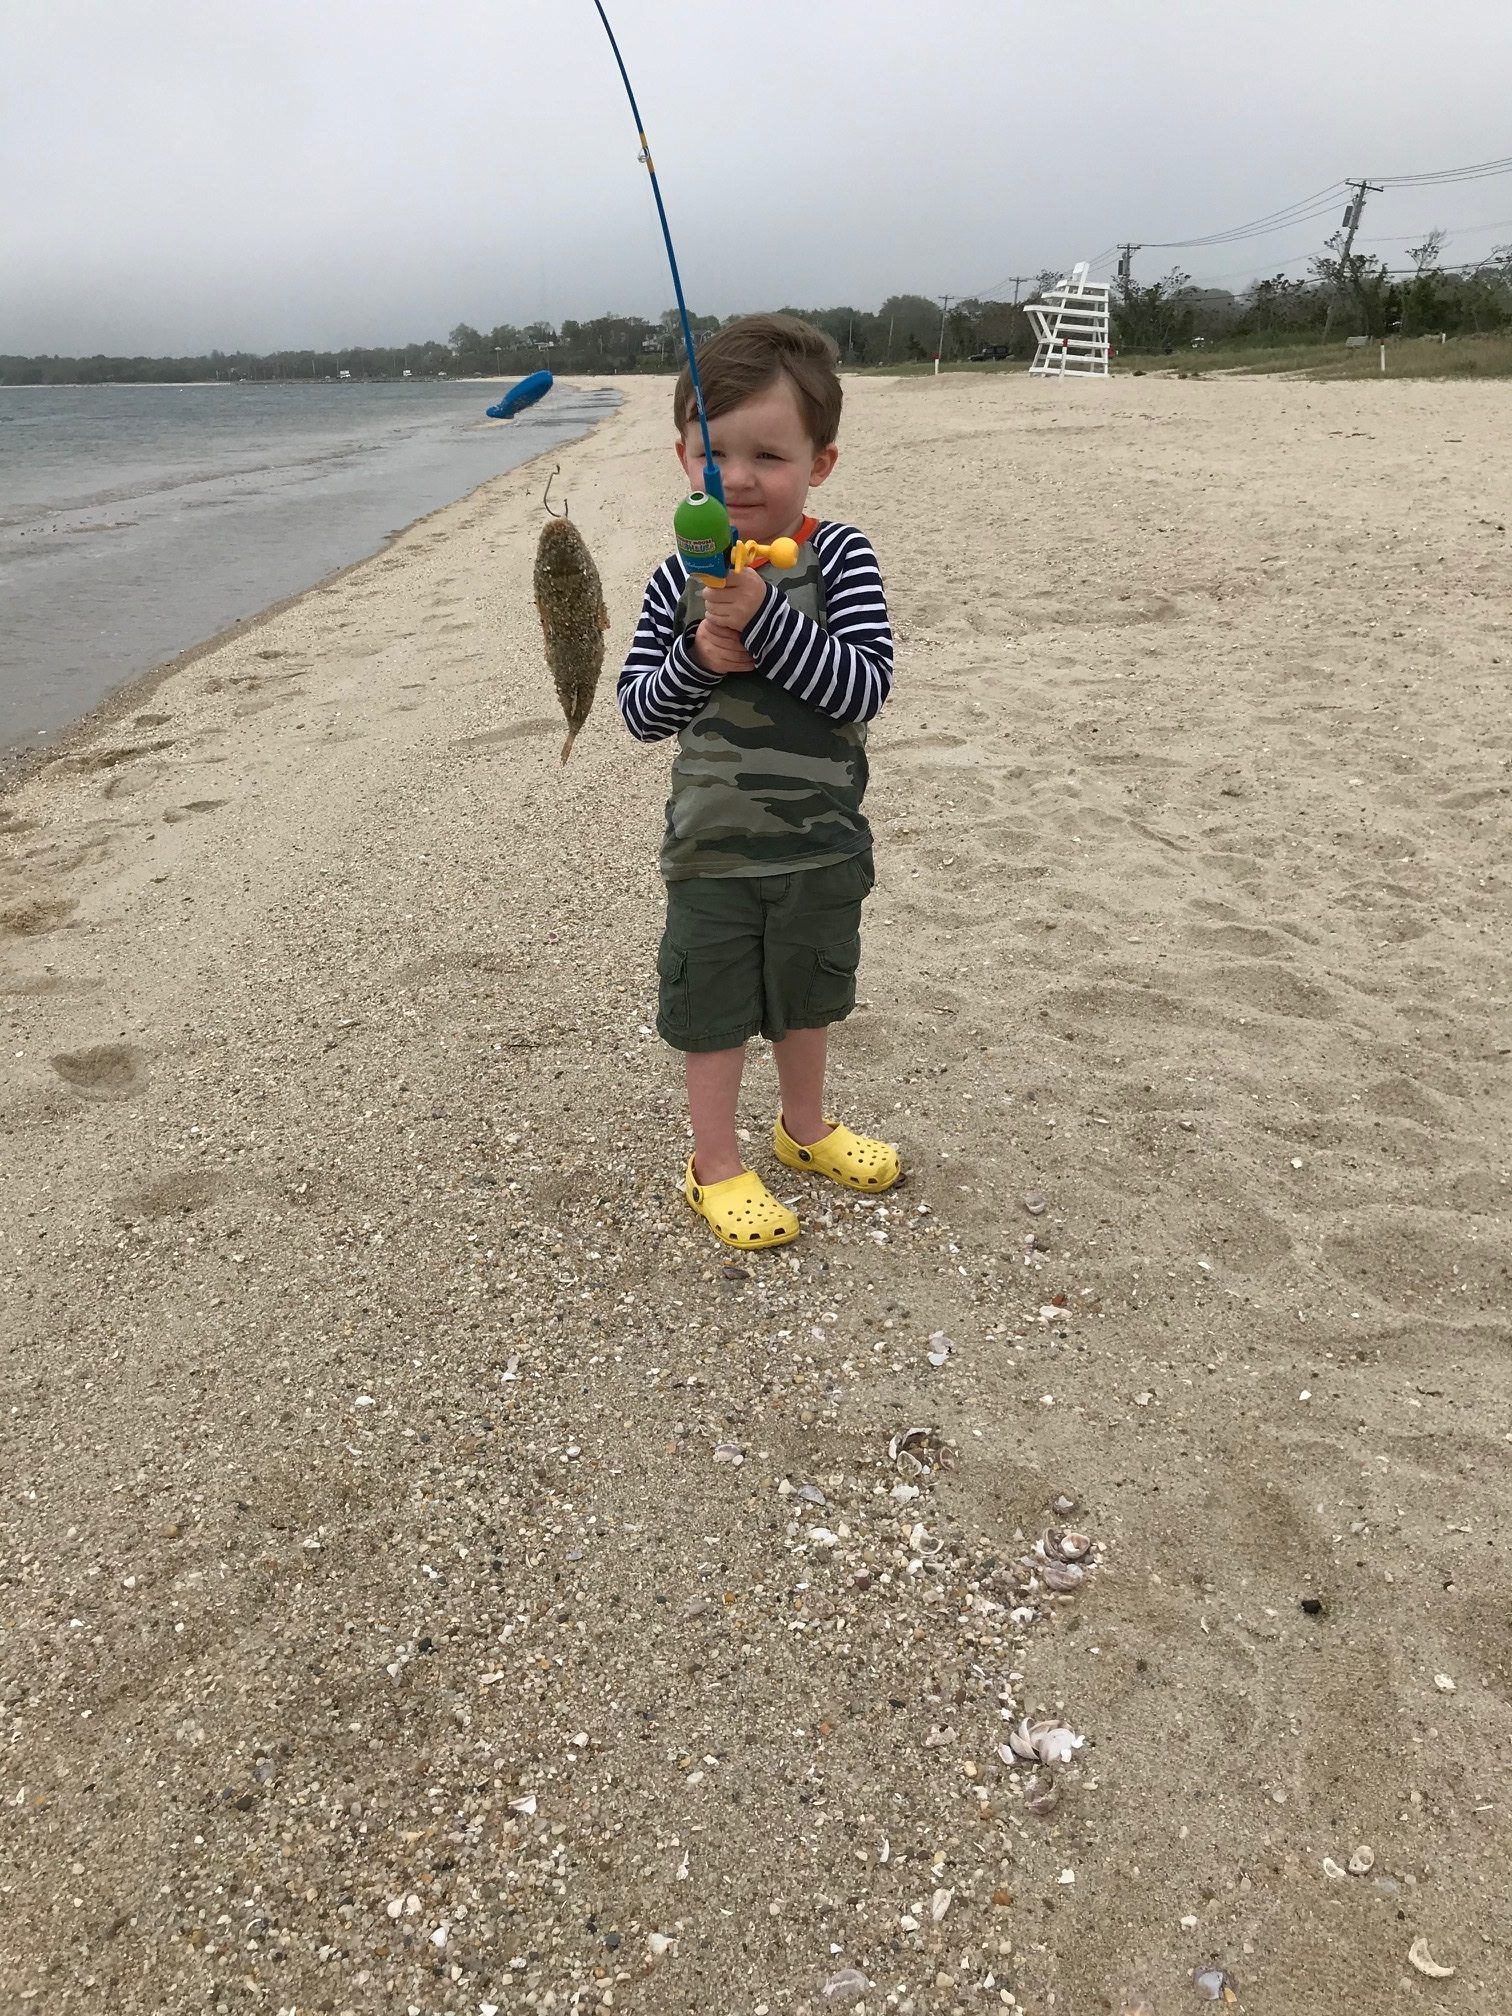 Three-year-old Henry Schubert caught his first fish on the first cast at Long Beach near the Bay Point home of his grandfather, Mark Hasllnger.